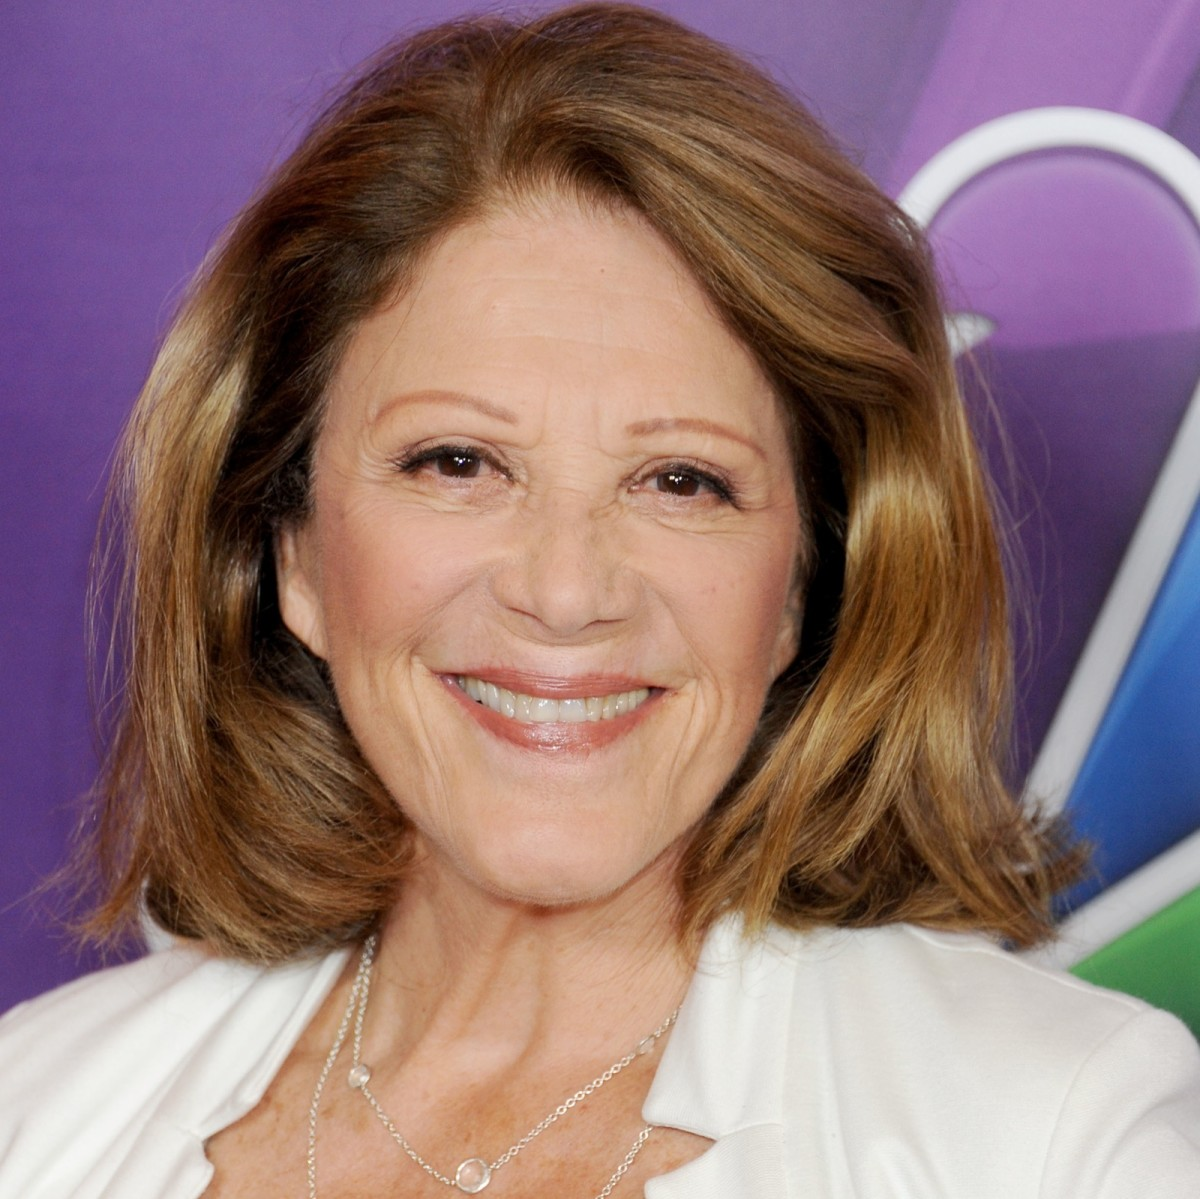 Linda Lavin photo via Getty Images